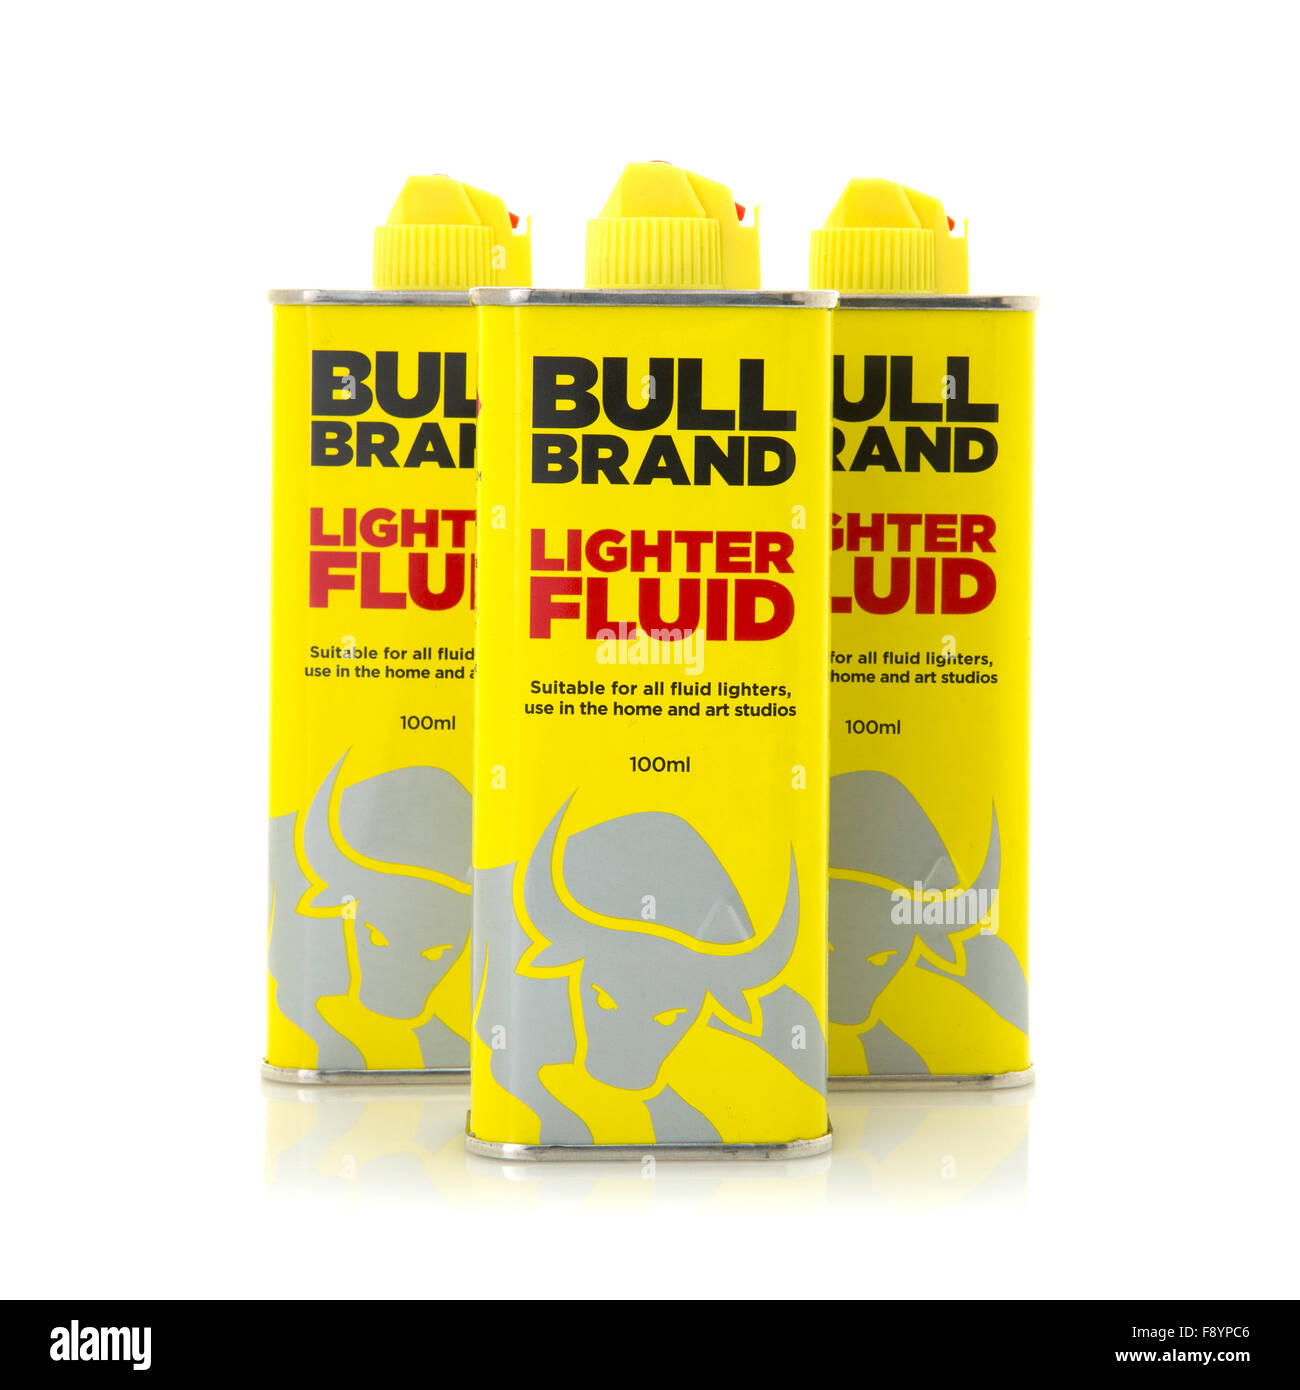 Three Cans Of Bull Brand Extra Refined Lighter Fluid on a White Background - Stock Image